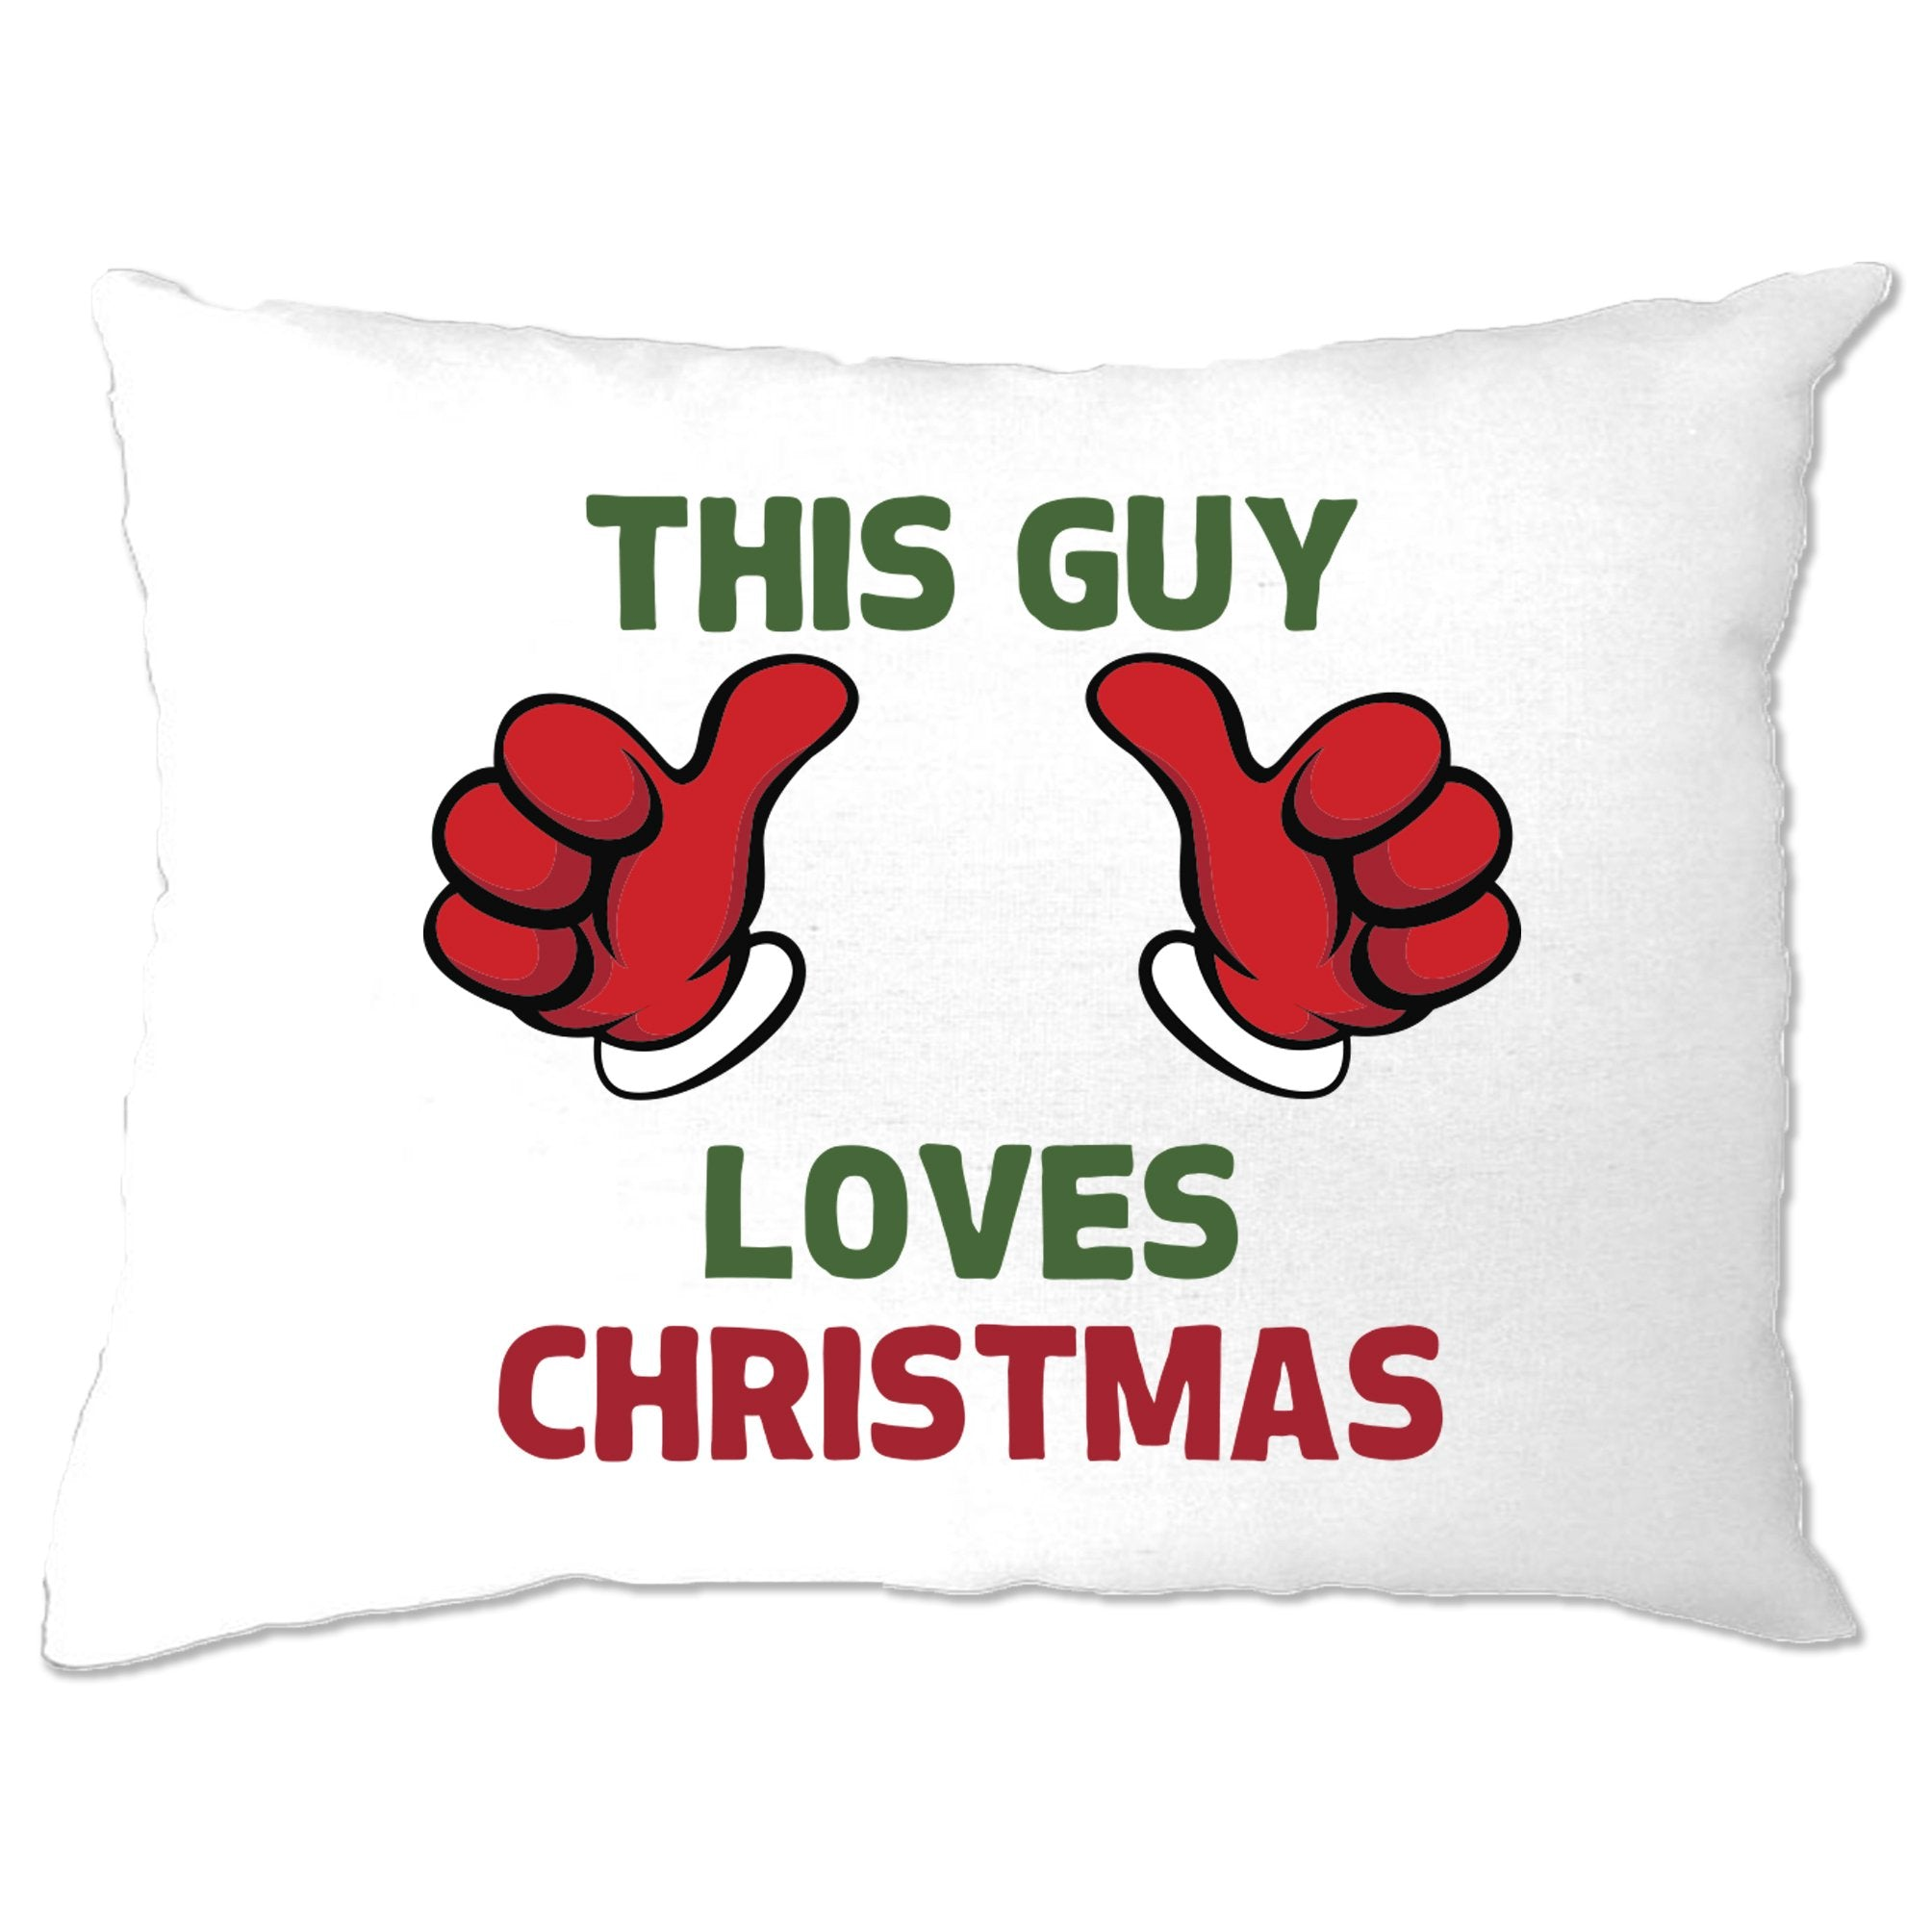 Novelty Christmas Pillow Case This Guy Loves Christmas